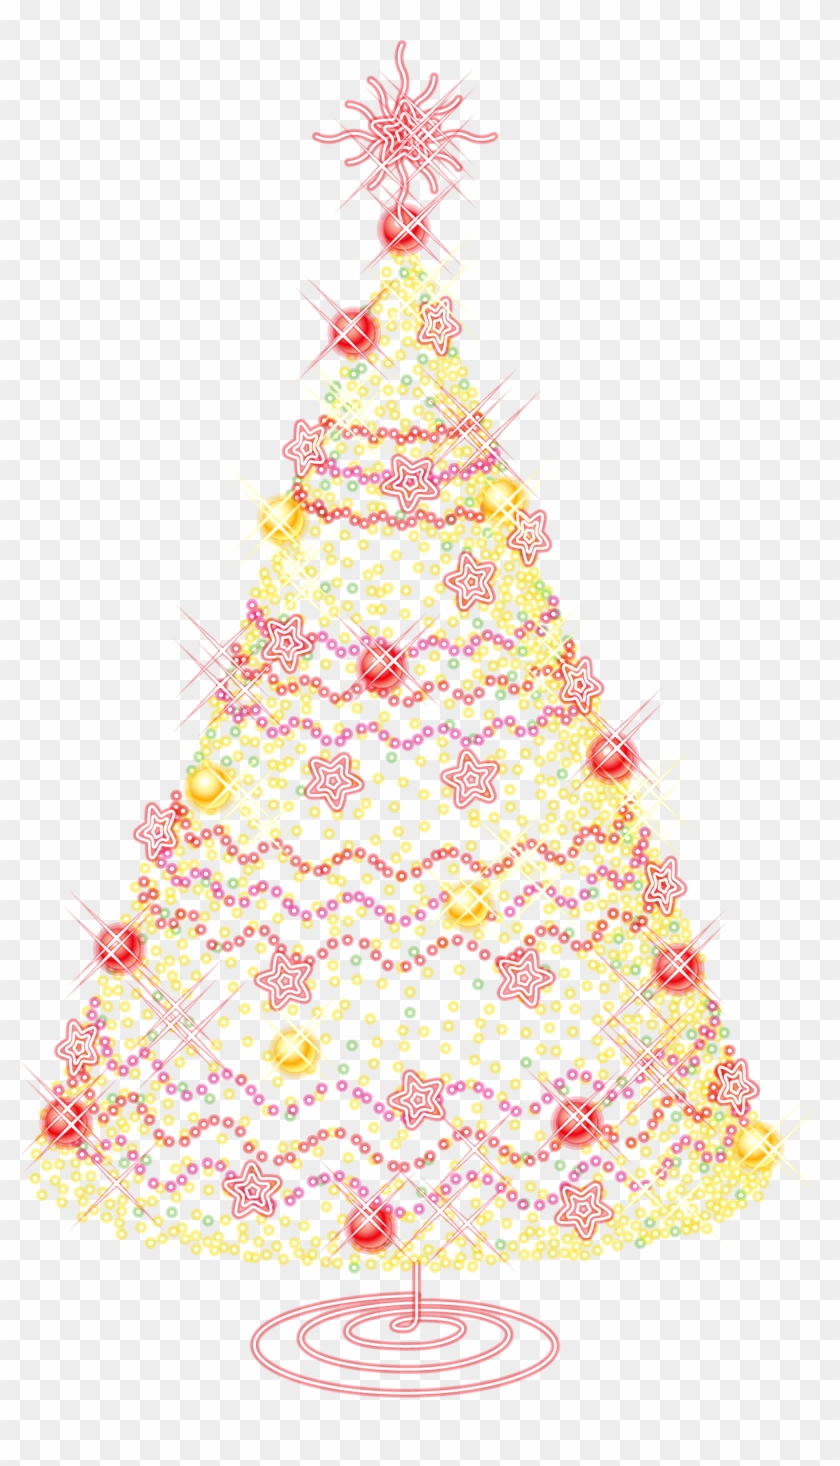 Gold Christmas Ornaments Png.Large Gold Transparent Christmas Tree With Ornaments